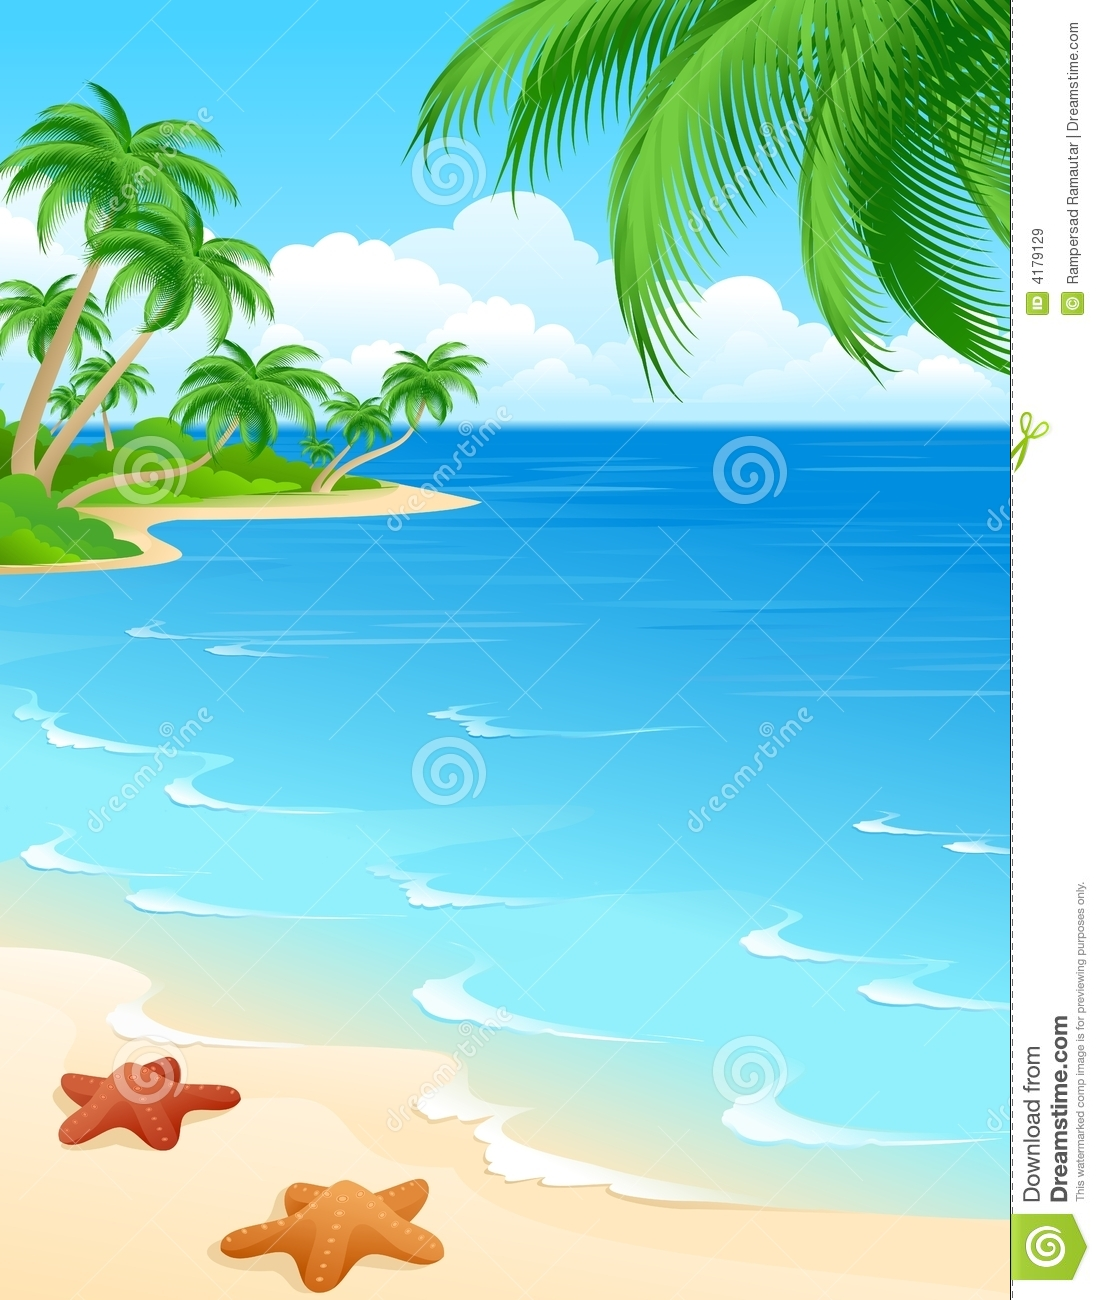 Free Clip Art Beach Beach Scene Royalty Free Stock Images Image